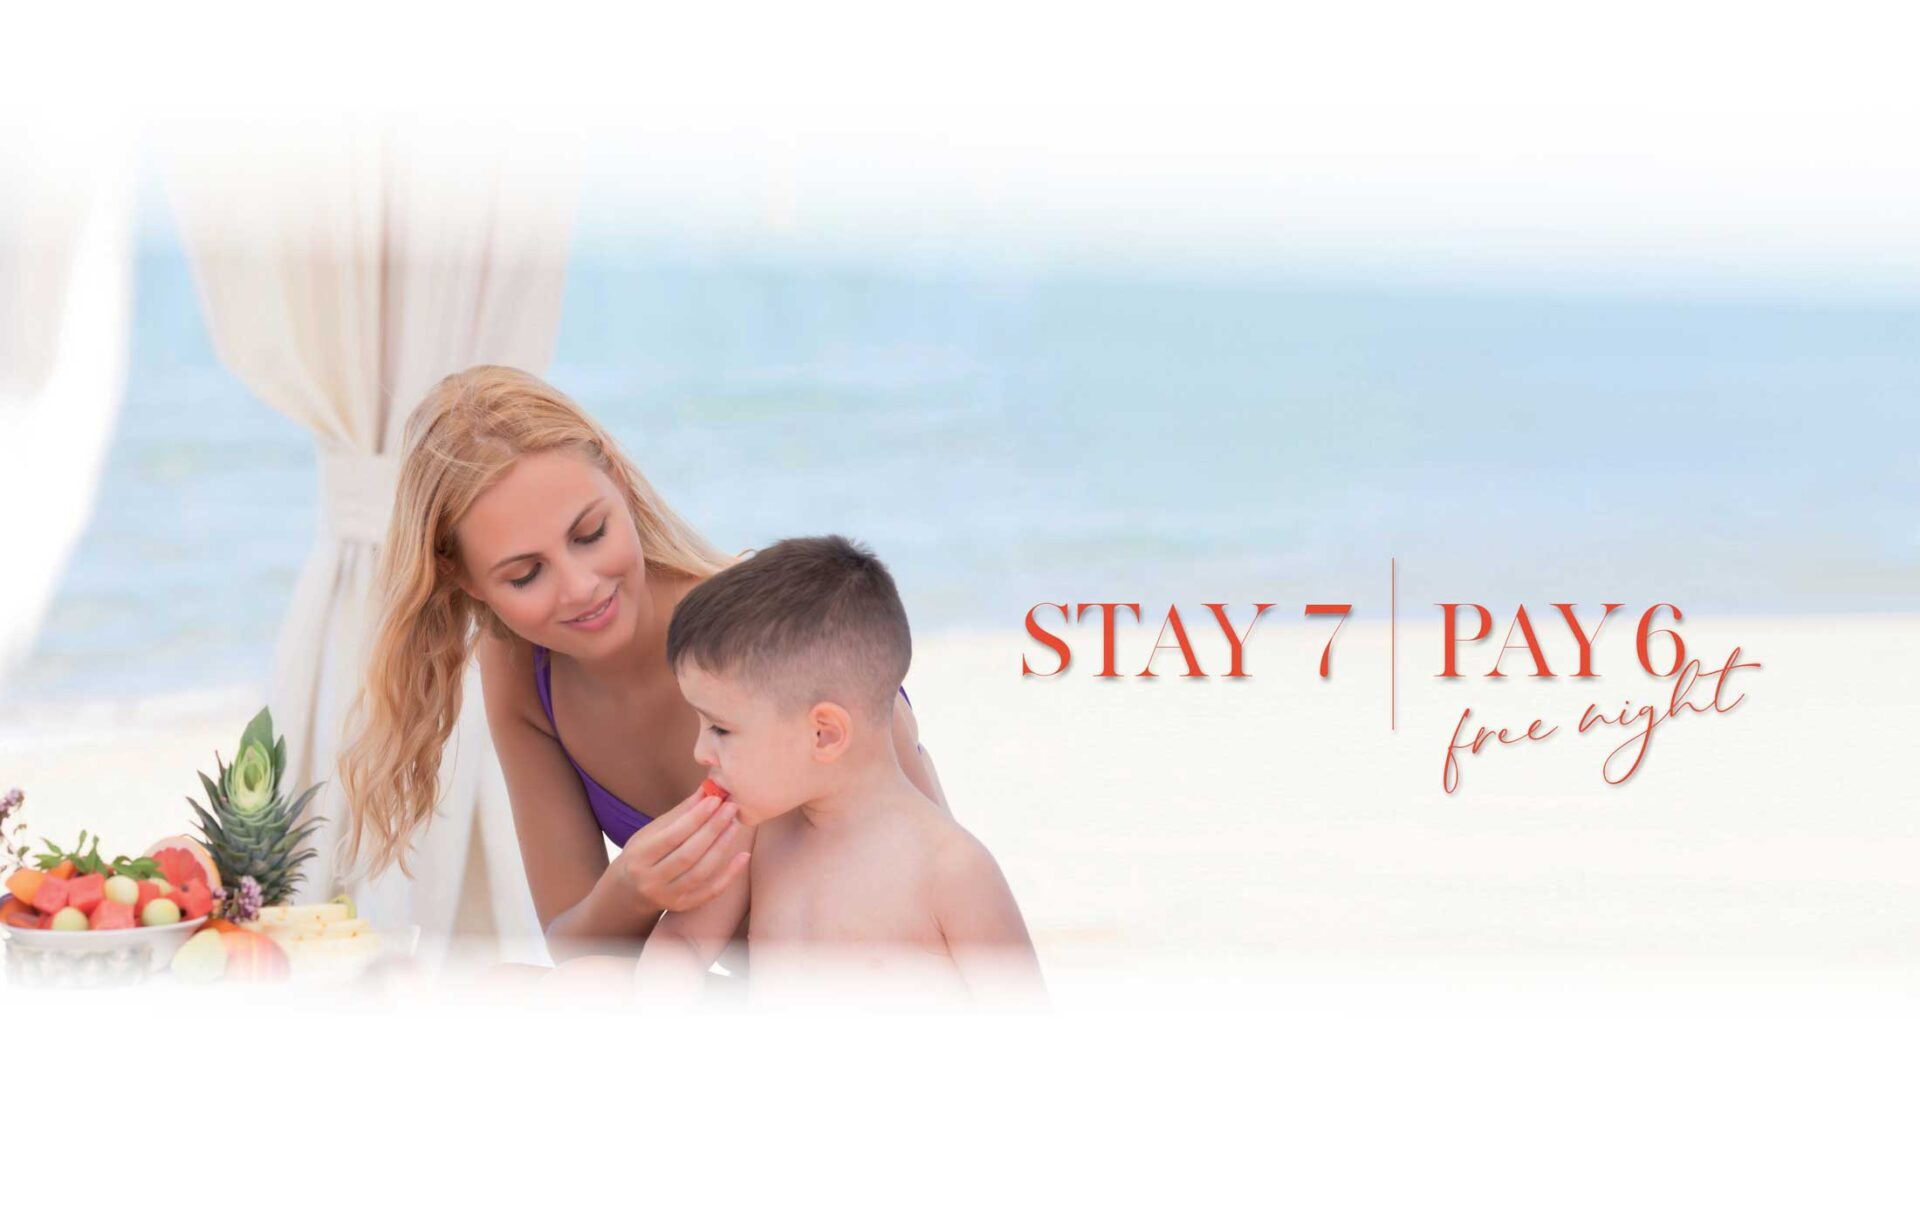 Stay 7 days & pay 6